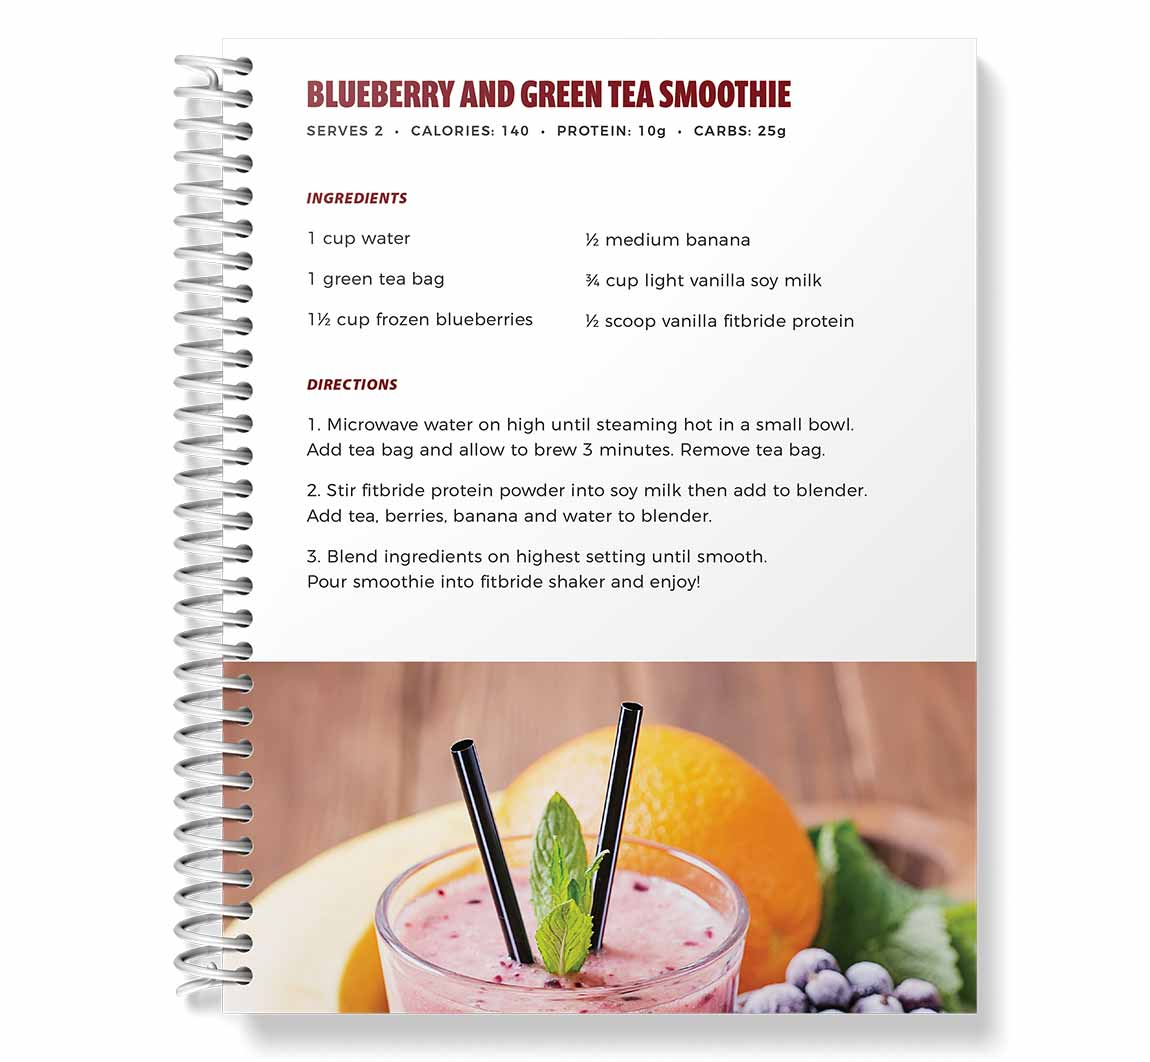 Smoothie recipes from the Fitbride Detox Guide